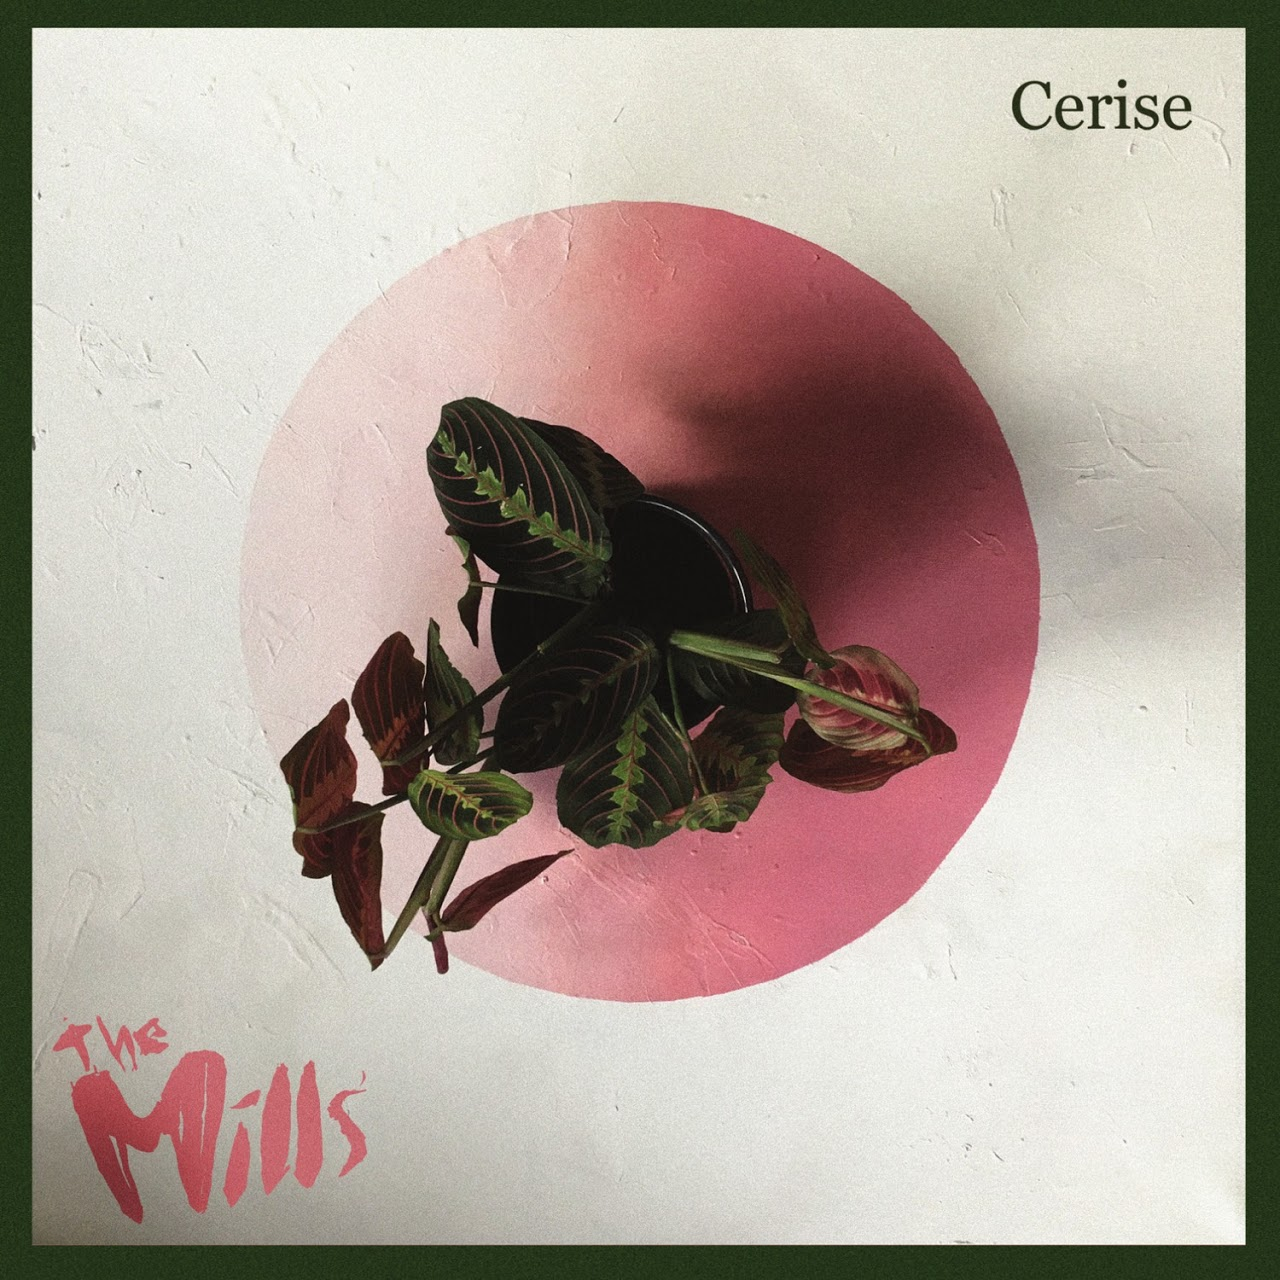 la cover dell'album dei The Mills Cerise